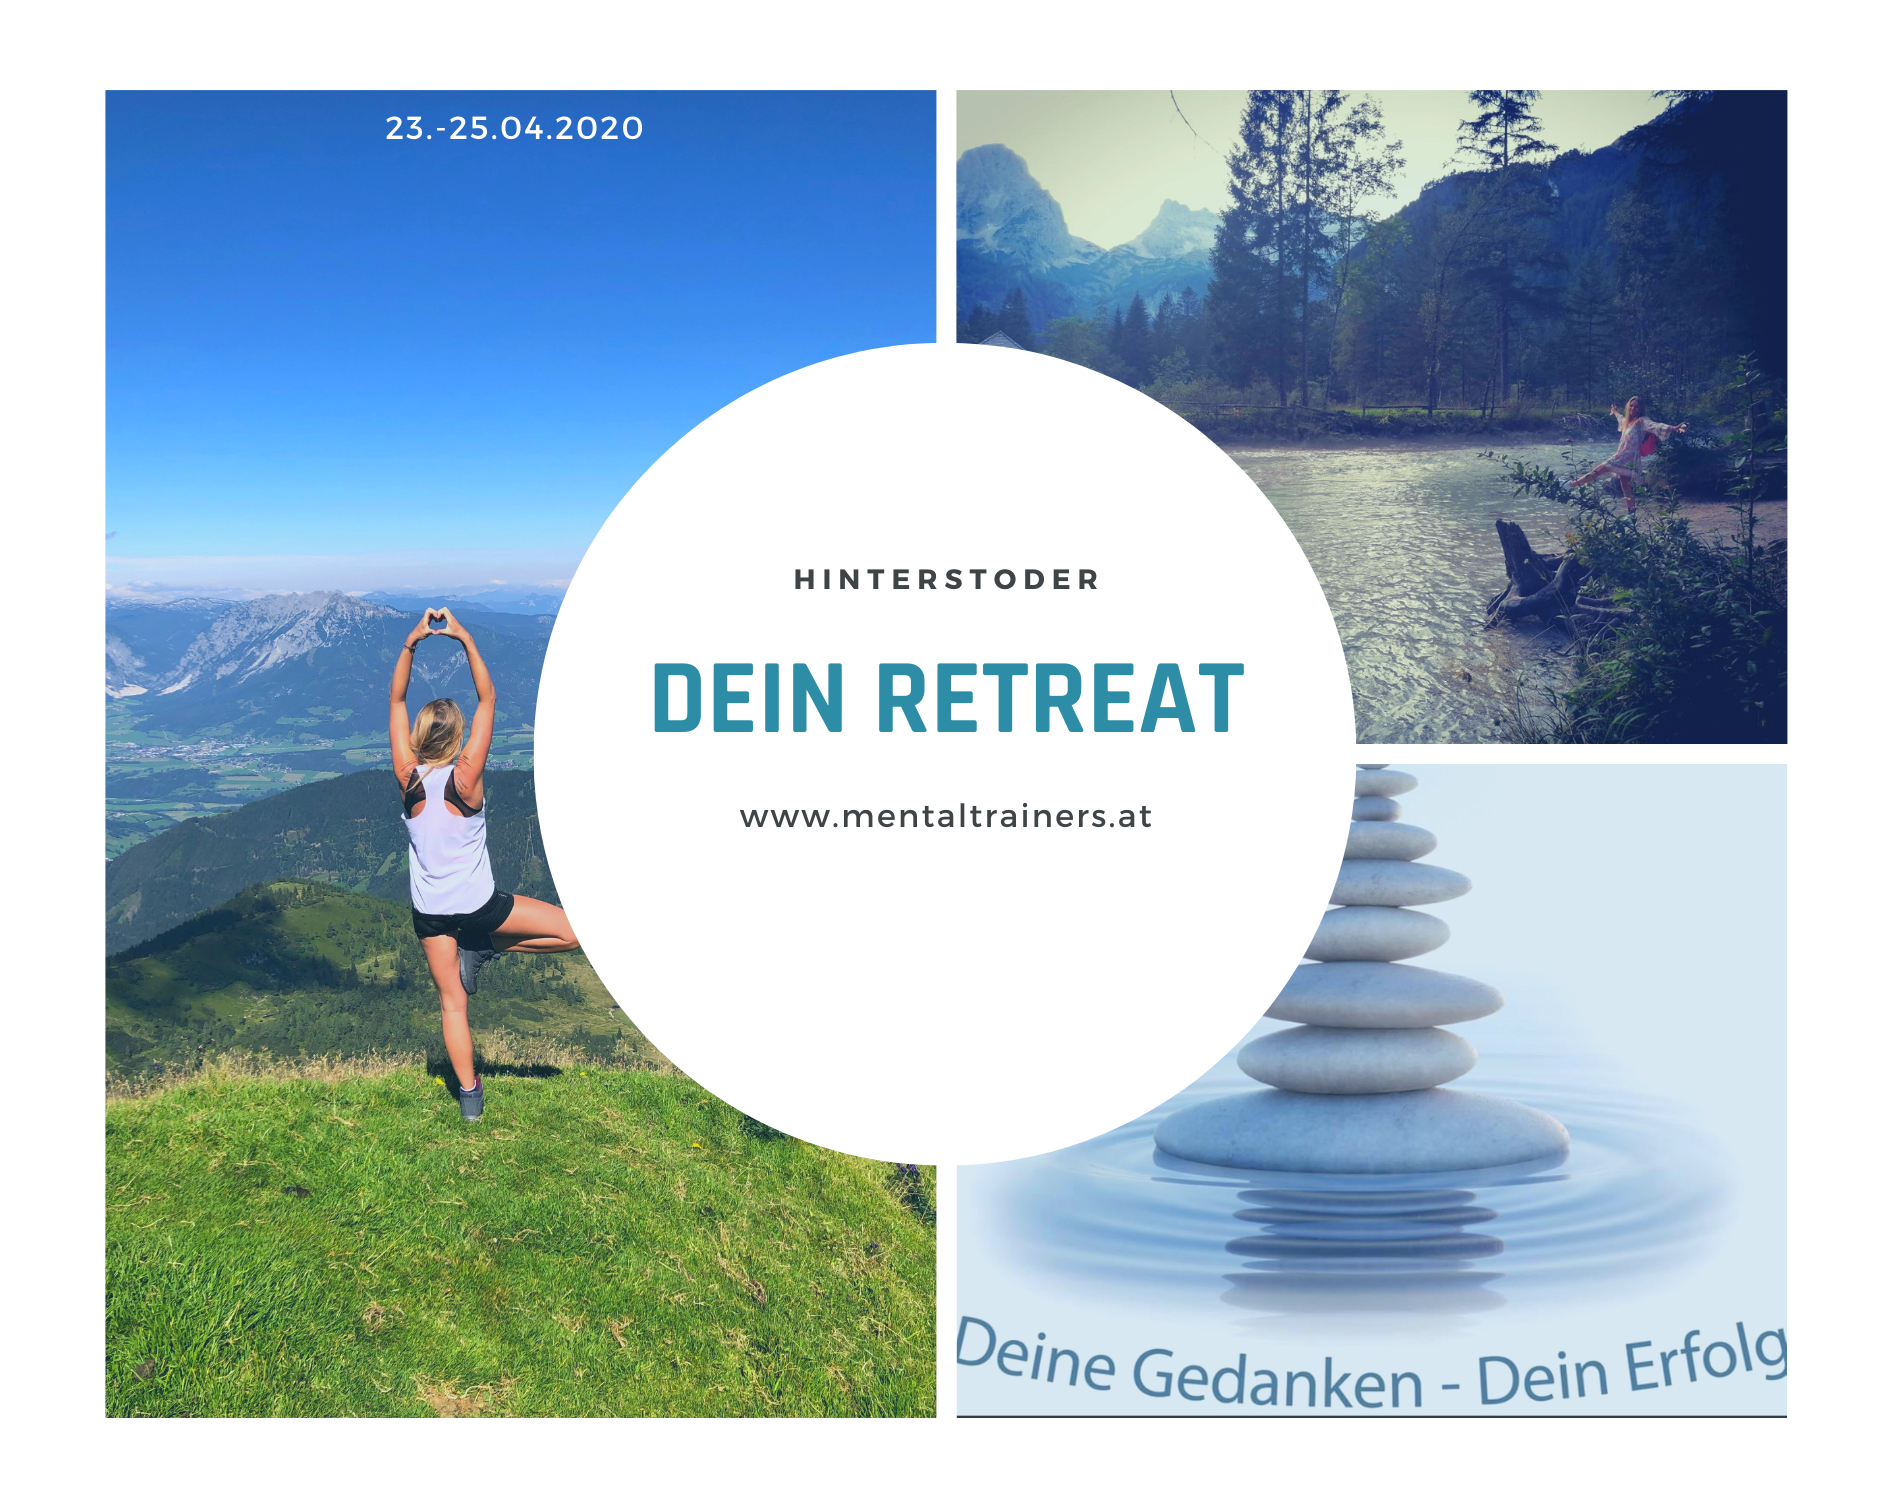 Retreat: Yoga-Wandern-Mentaltraining